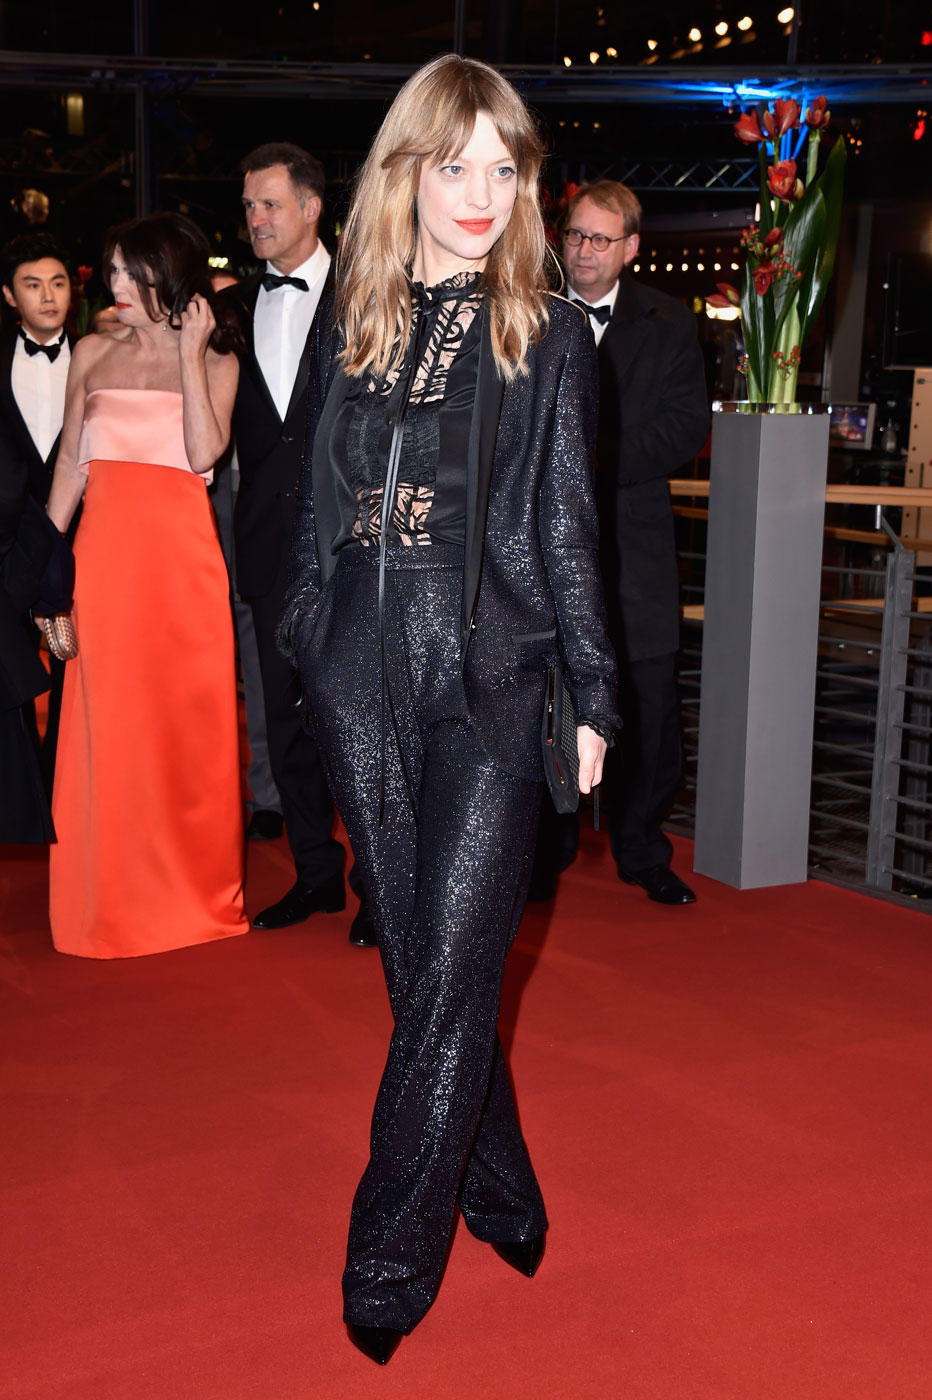 Berlinale 2016: Heike Makatsch